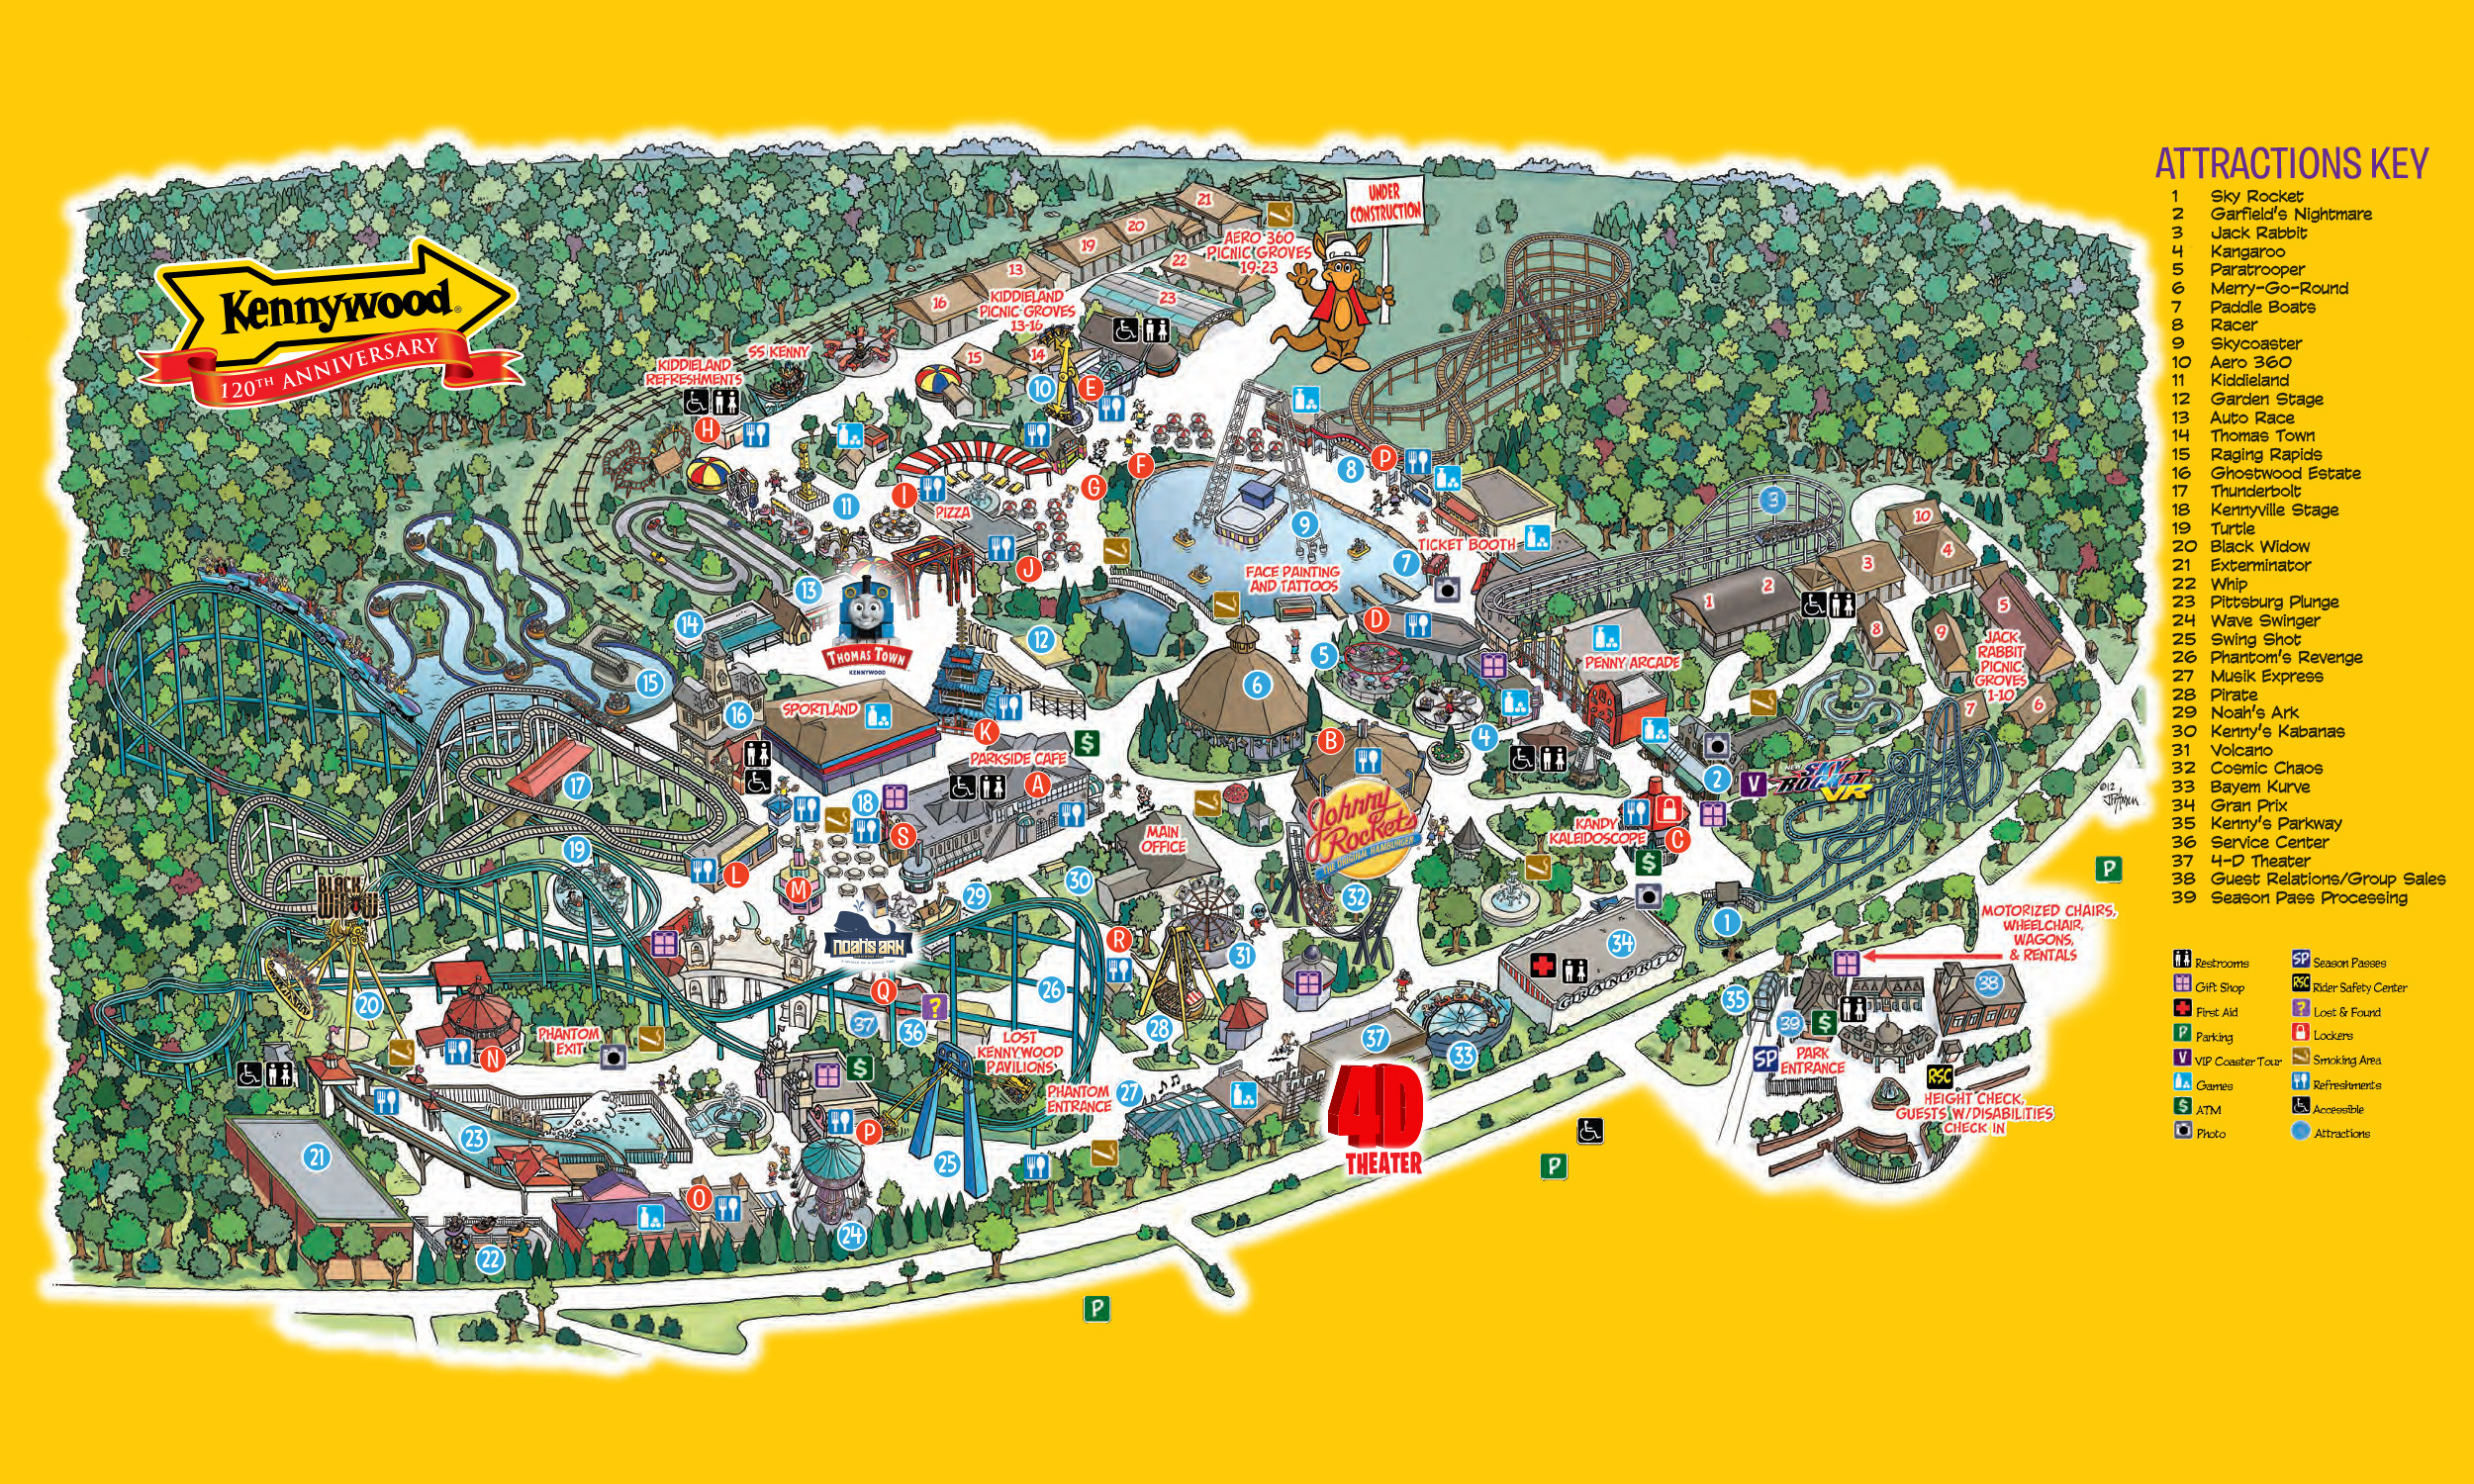 Amusement Parks California Map New Us Theme Park Map - Ettcarworld - Amusement Parks California Map